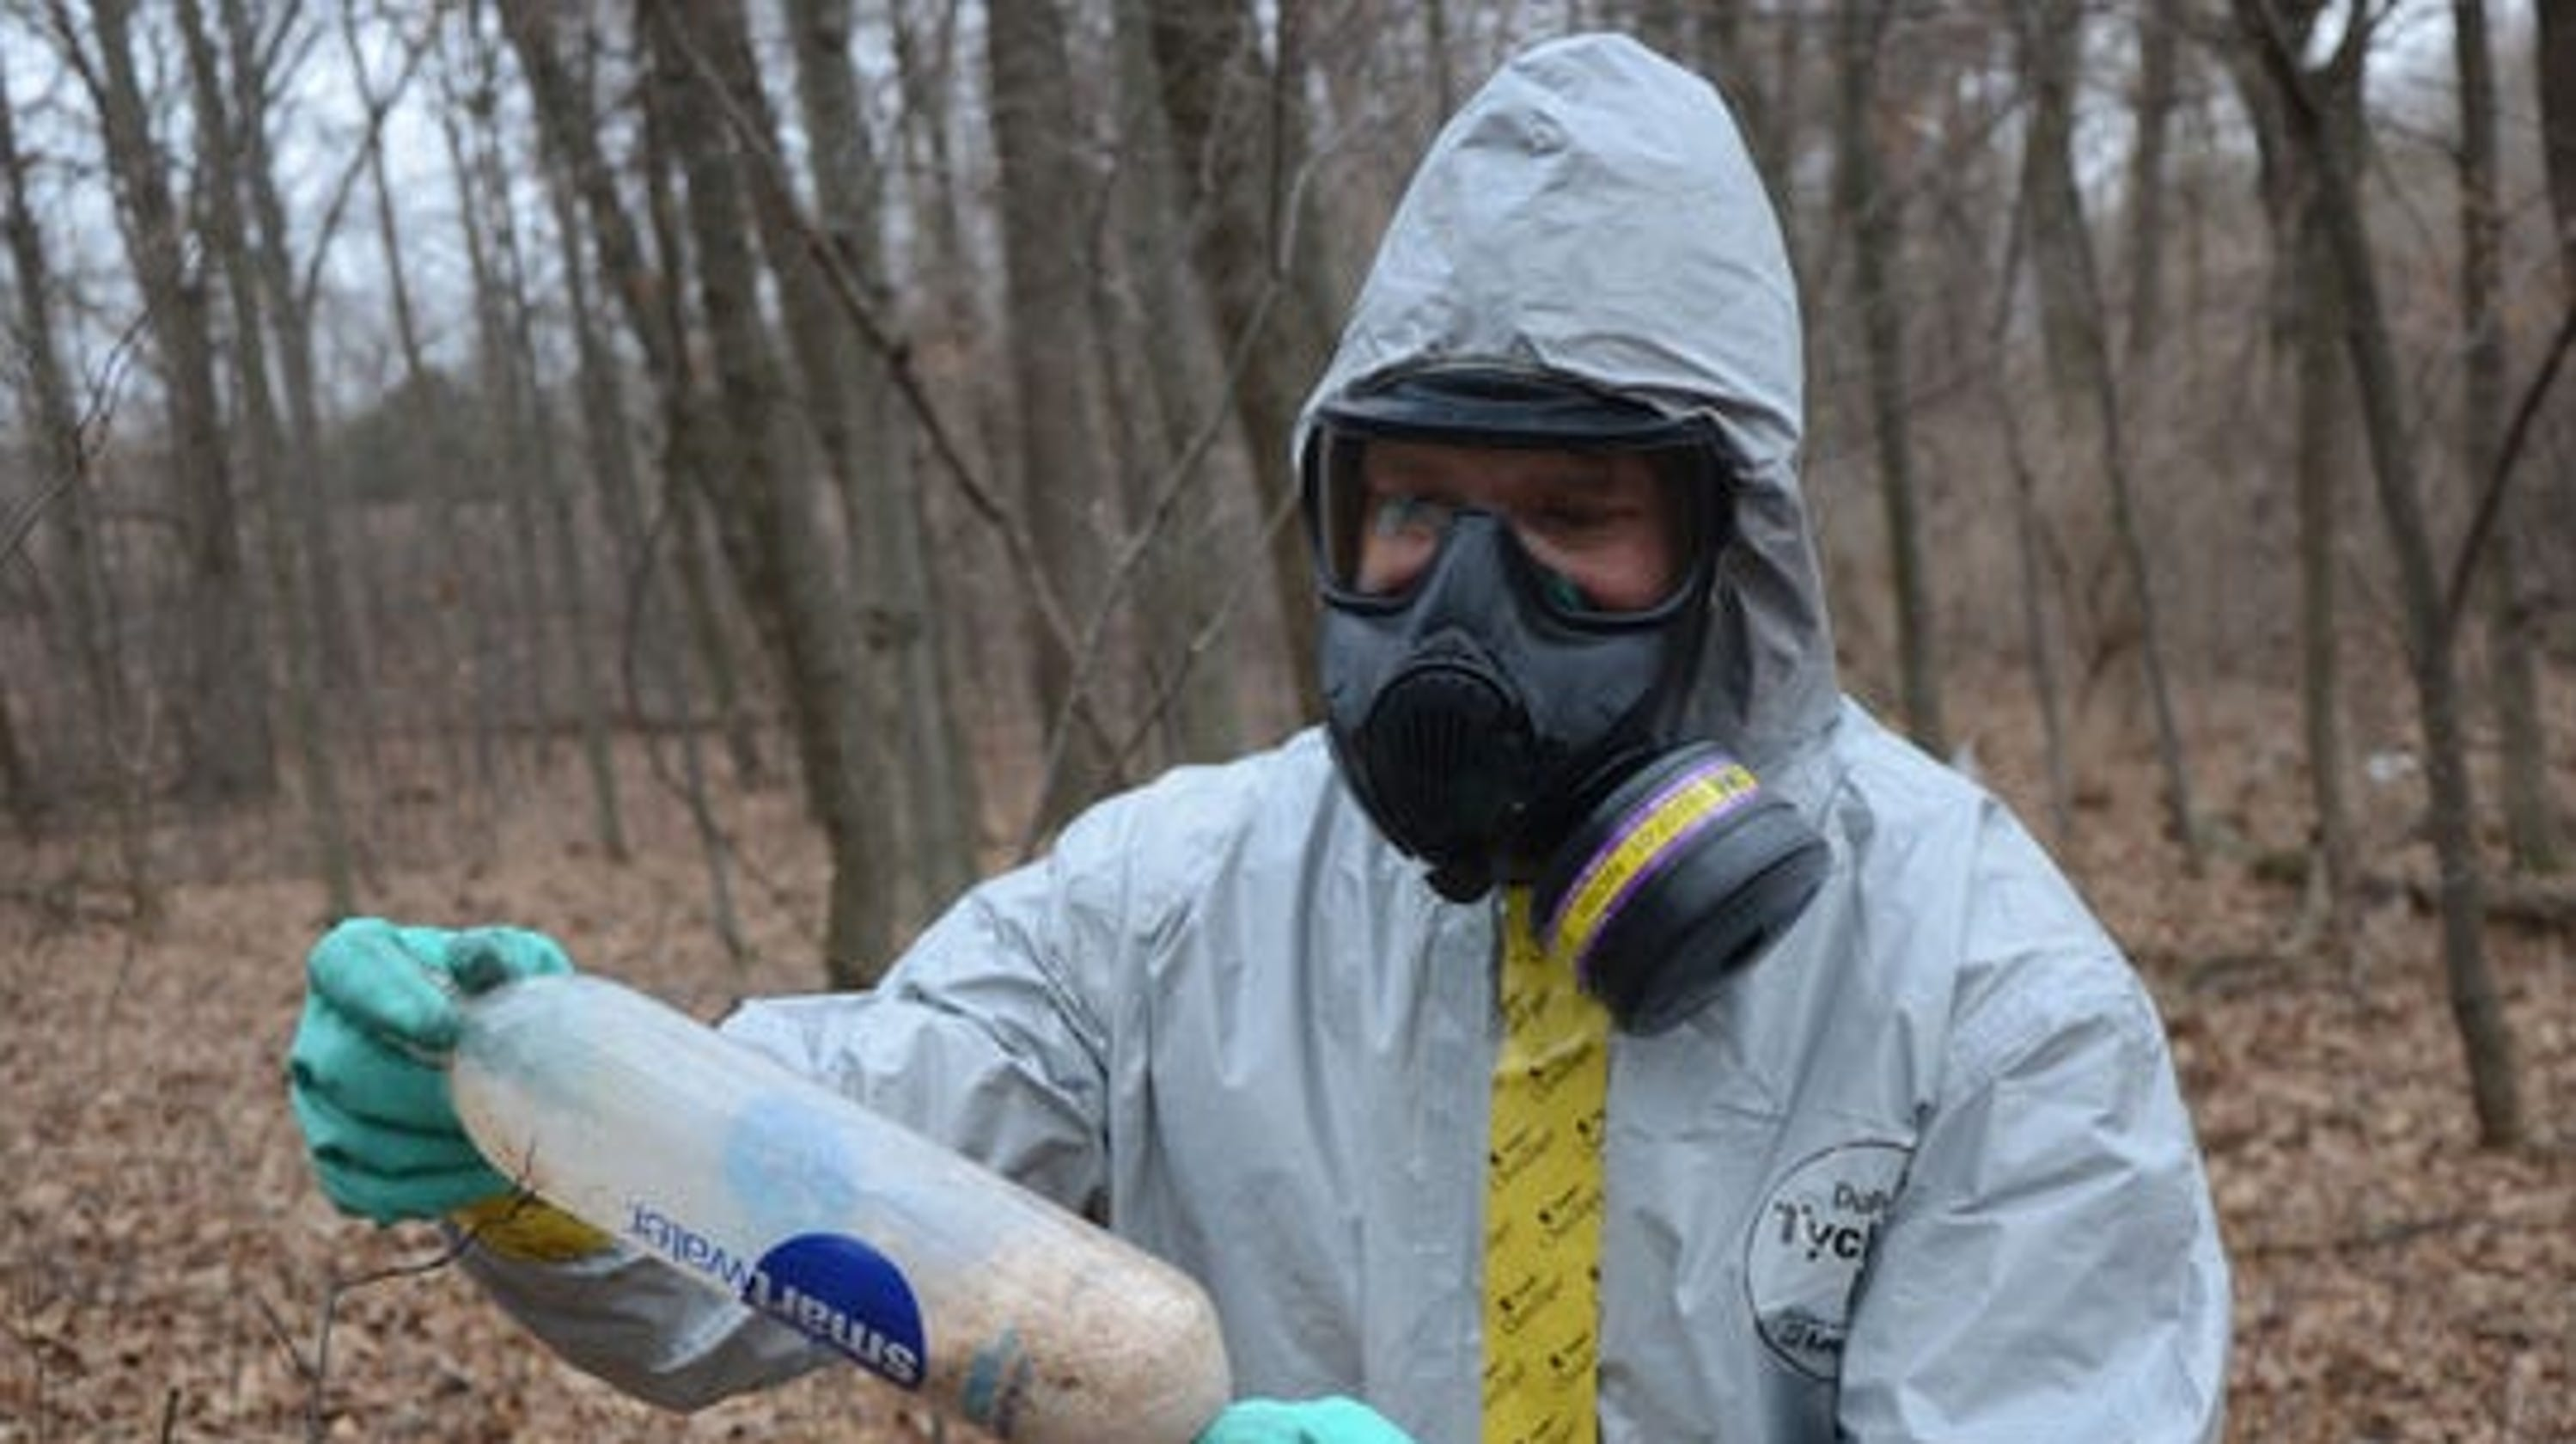 Addicts turn away from homemade meth labs and rely on